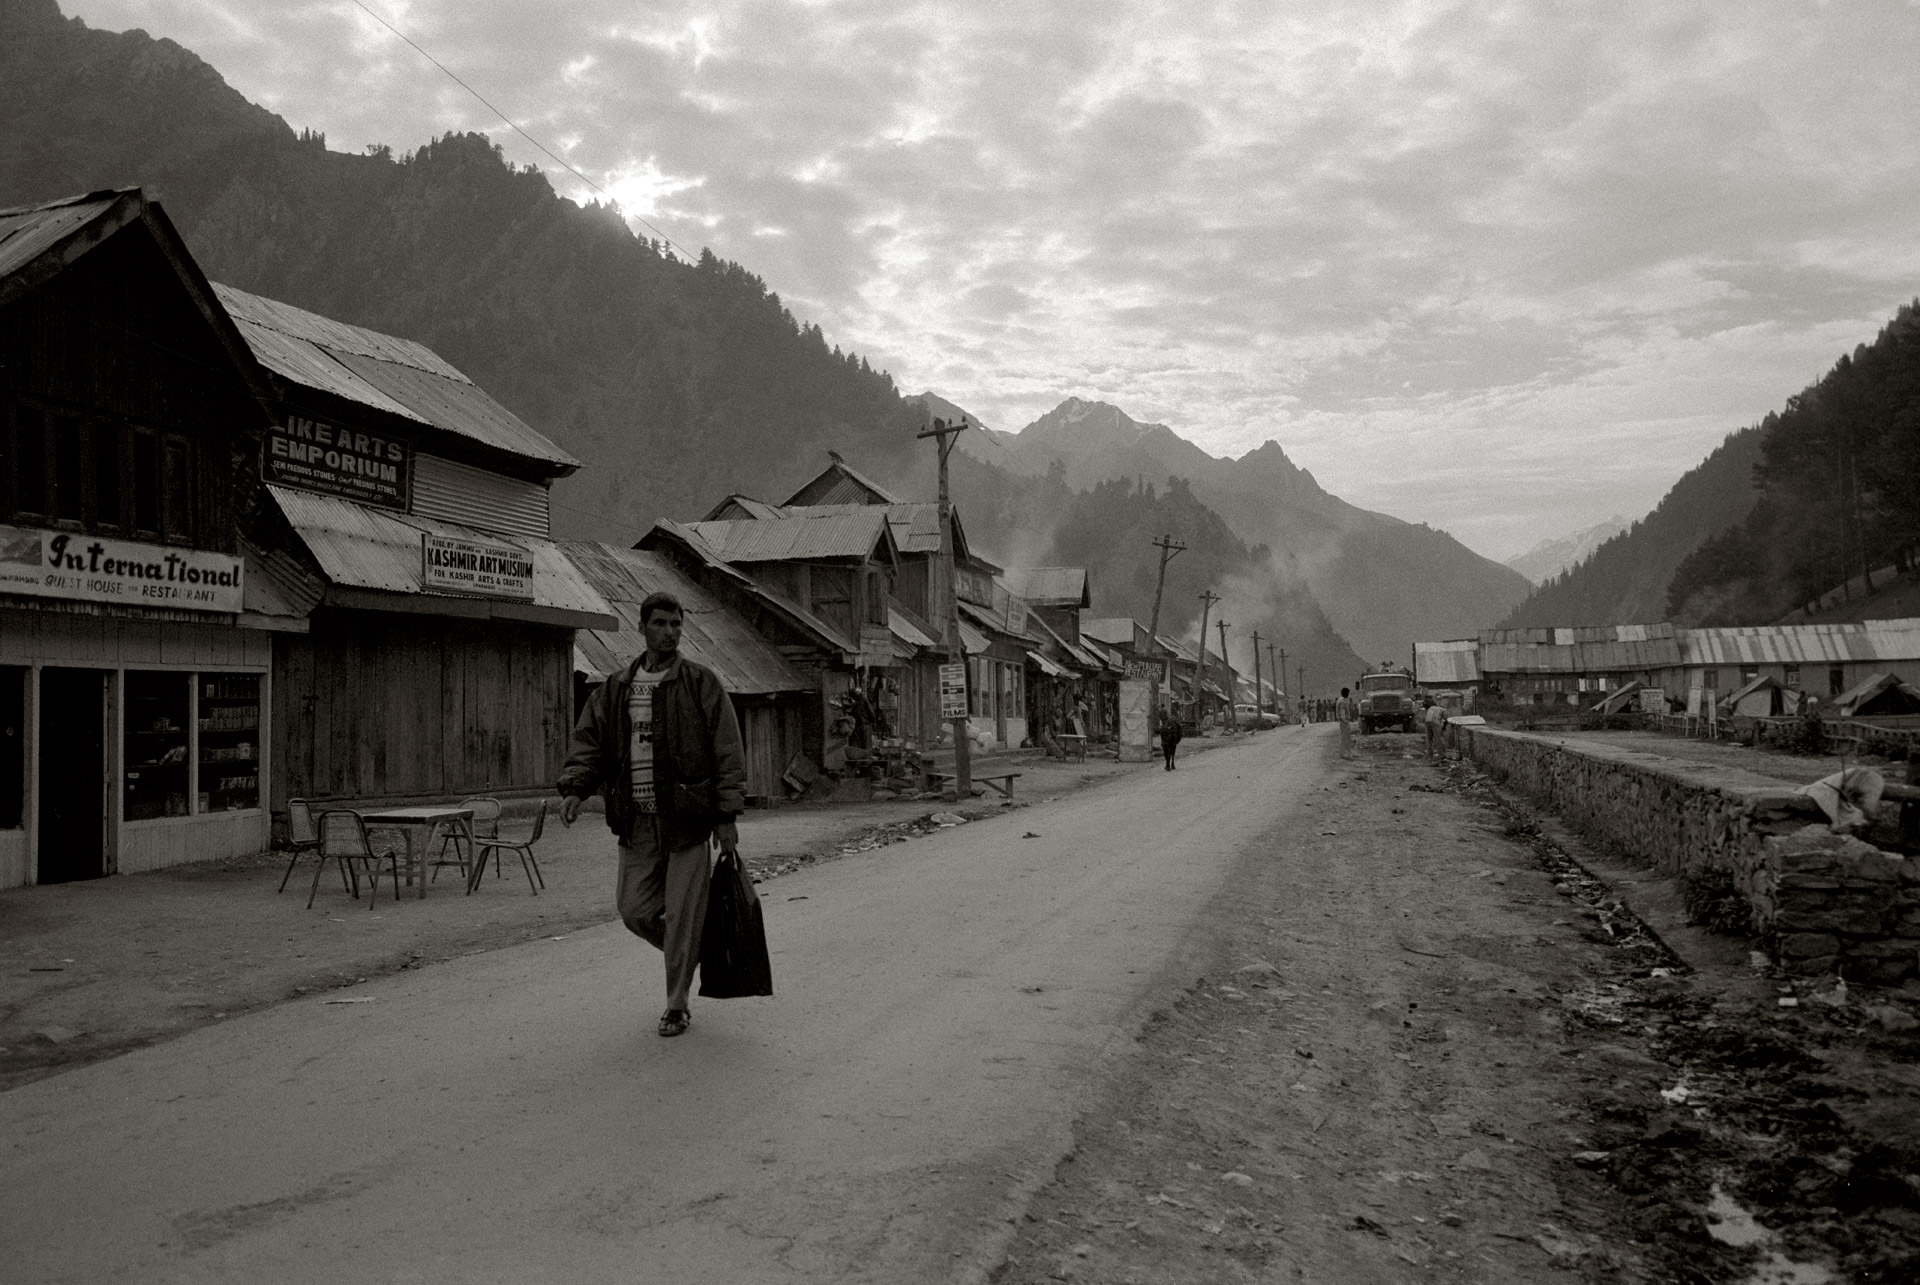 A man walking in the road in Sona Marg in Kashmir, India